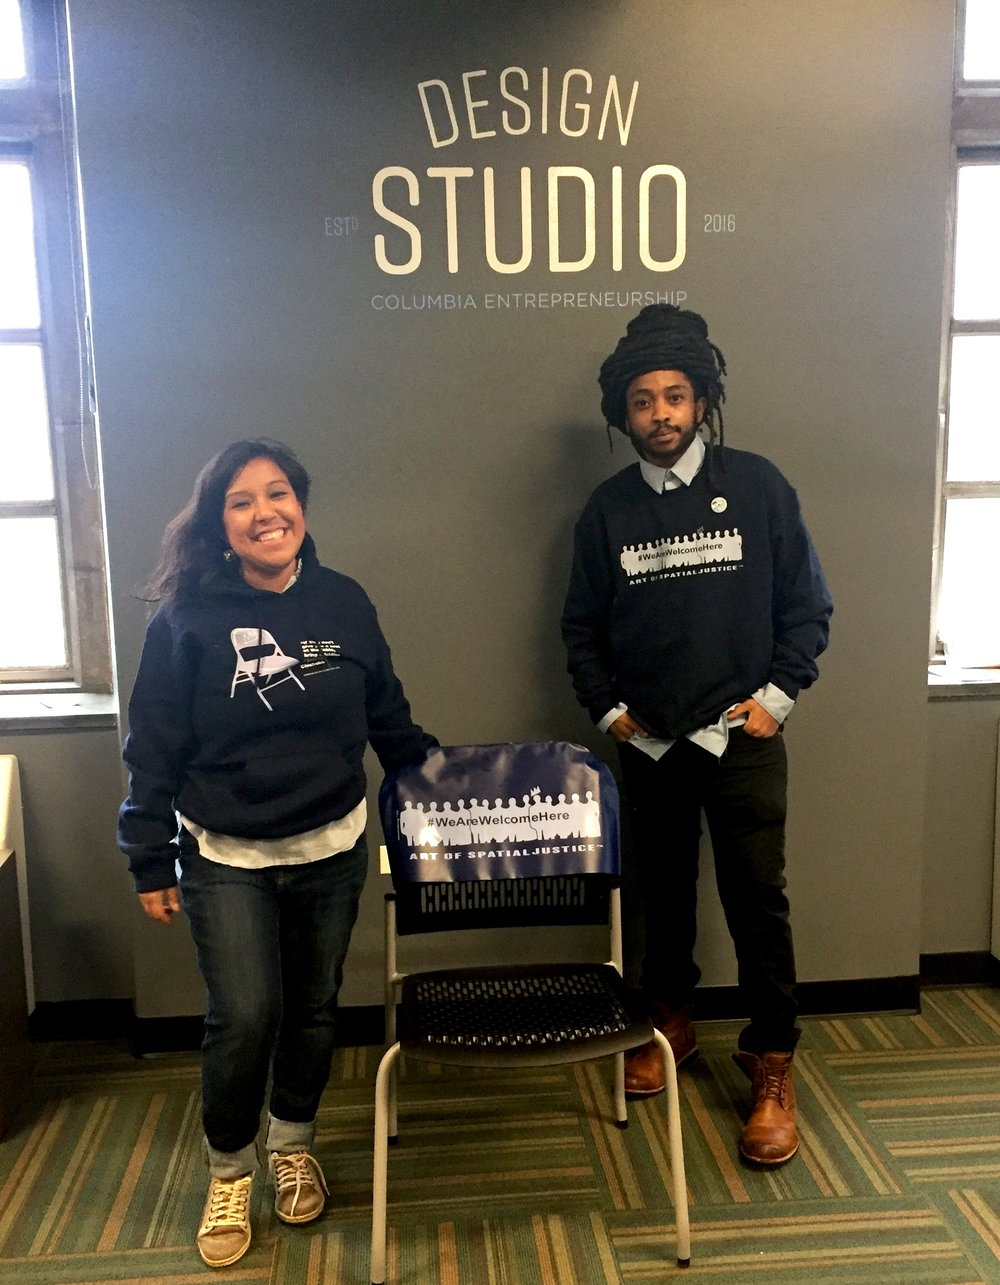 Crowdfunding - Our founders Ilya Benjamin and Marisol Cantú decided to do something about it. Ilya launched a logo and coined the hashtag #WeAreWelcomeHere. Our goal was to sell 20 shirts in 20 days to gauge student interest. We completed our inaugural challenge in 14 days.